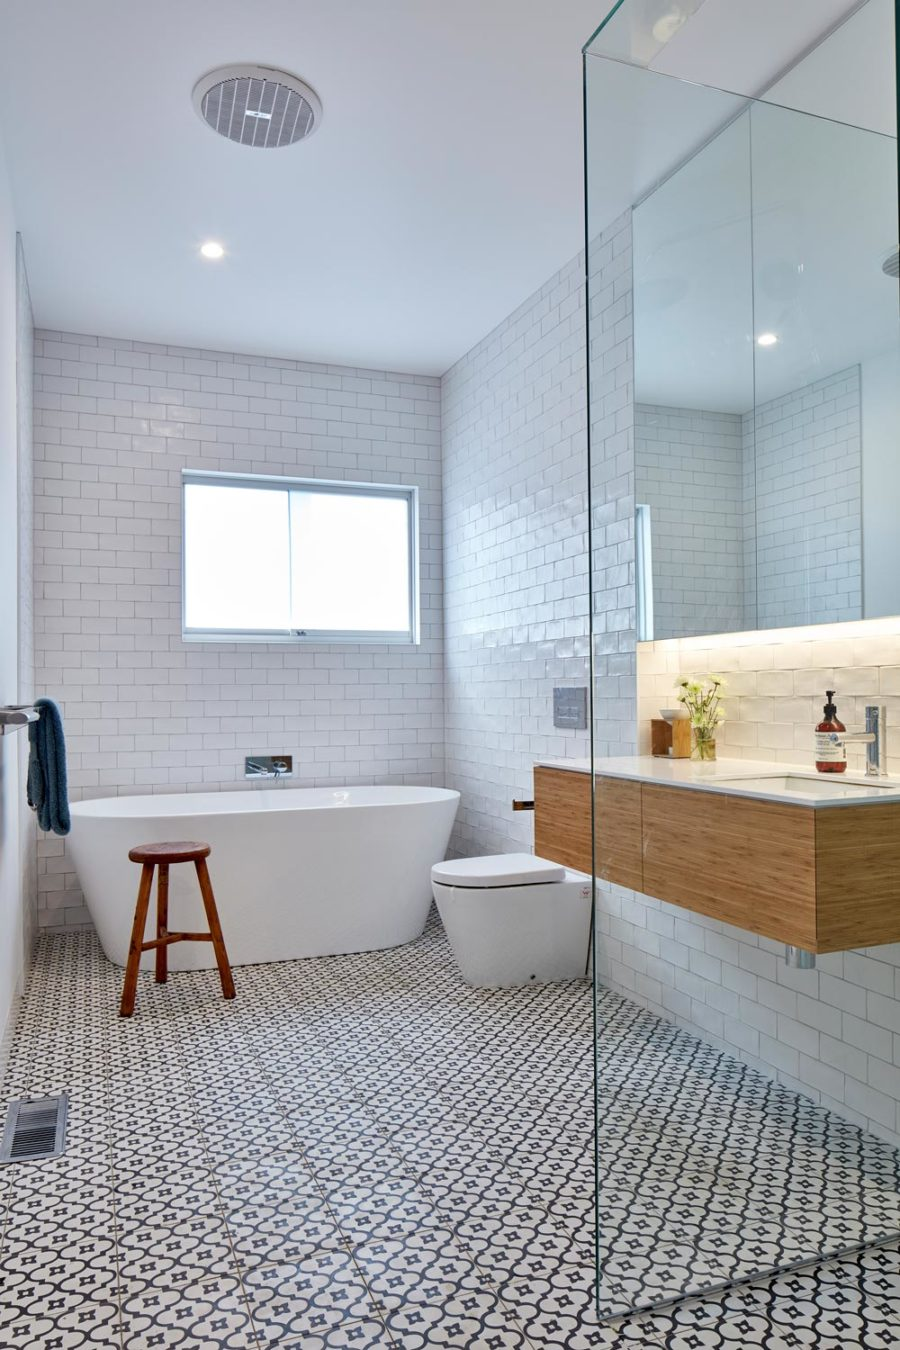 Simple modernist bath looks almost Scandinavian